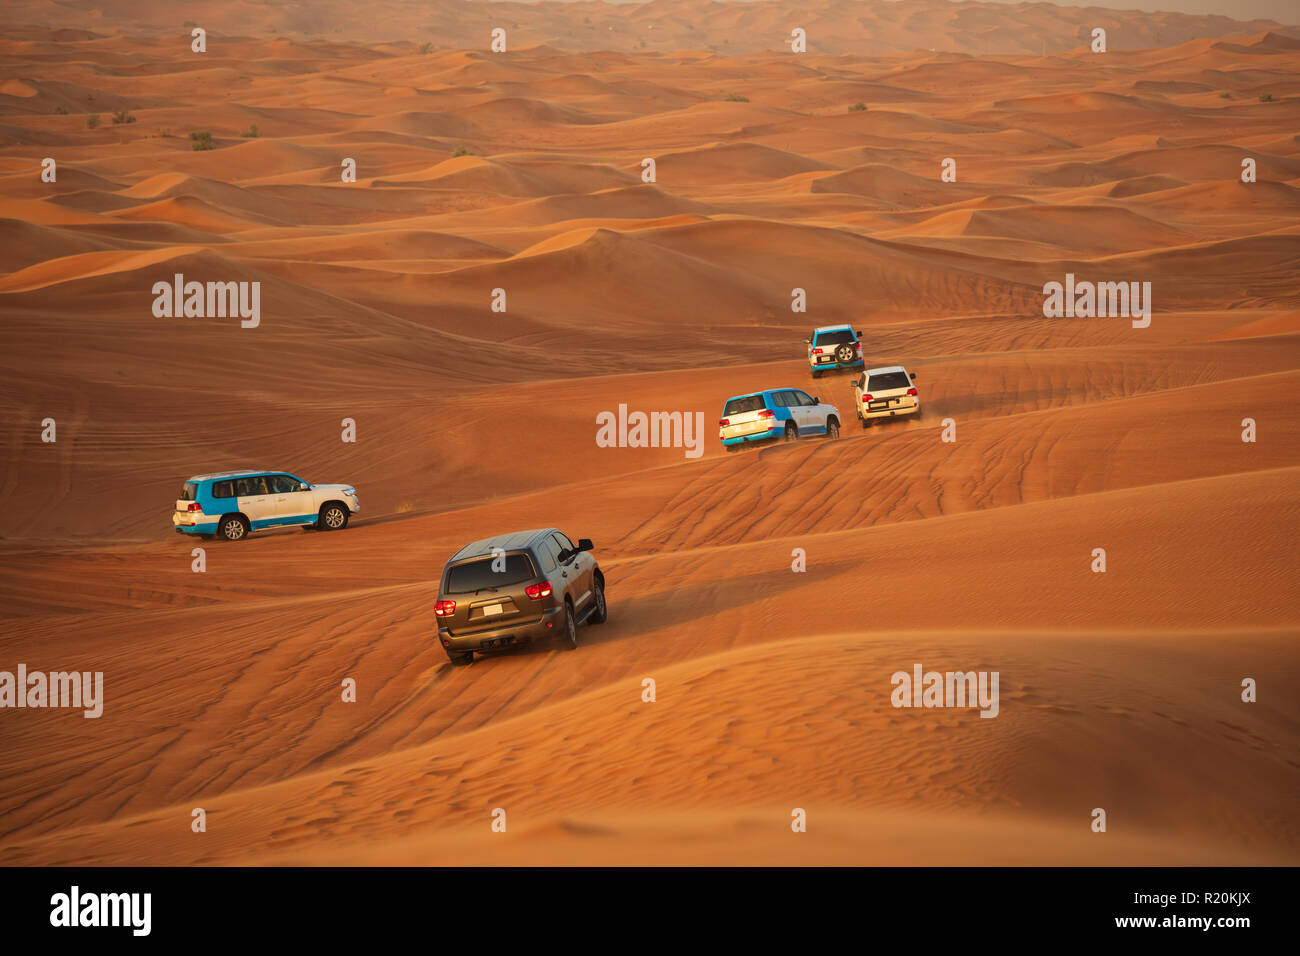 Off-road adventure with SUVs driving in Arabian Desert at sunset. Traditional entertainment for tourists with vehicle bashing through sand dunes in Du - Stock Image